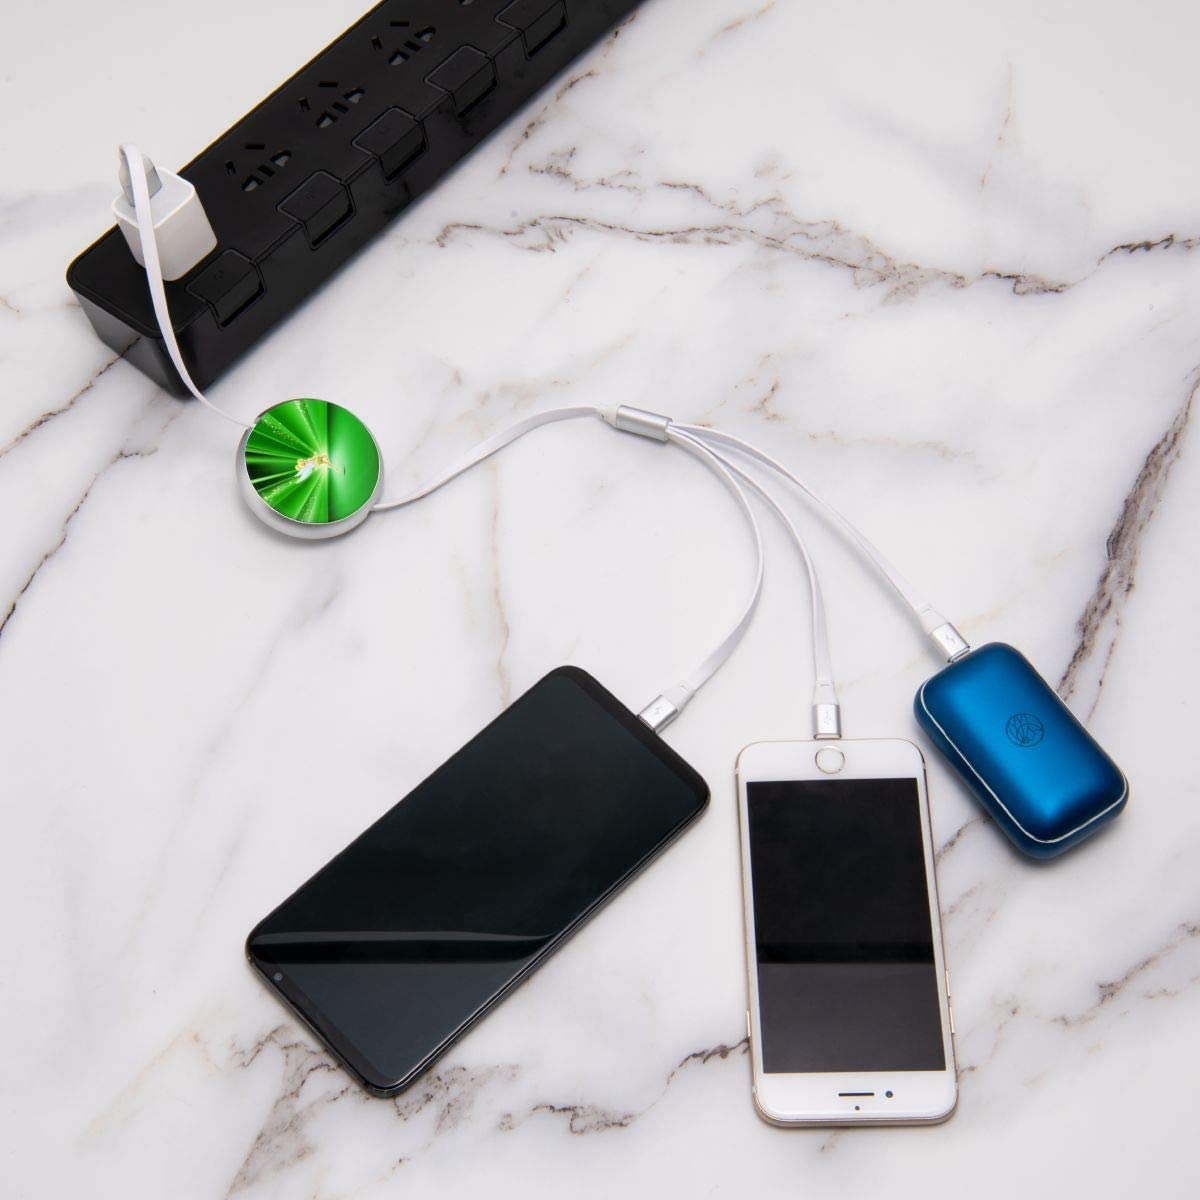 Tinker Bell USB Cable Three-in-One Round Charger Telescopic Data Multifunction Cable